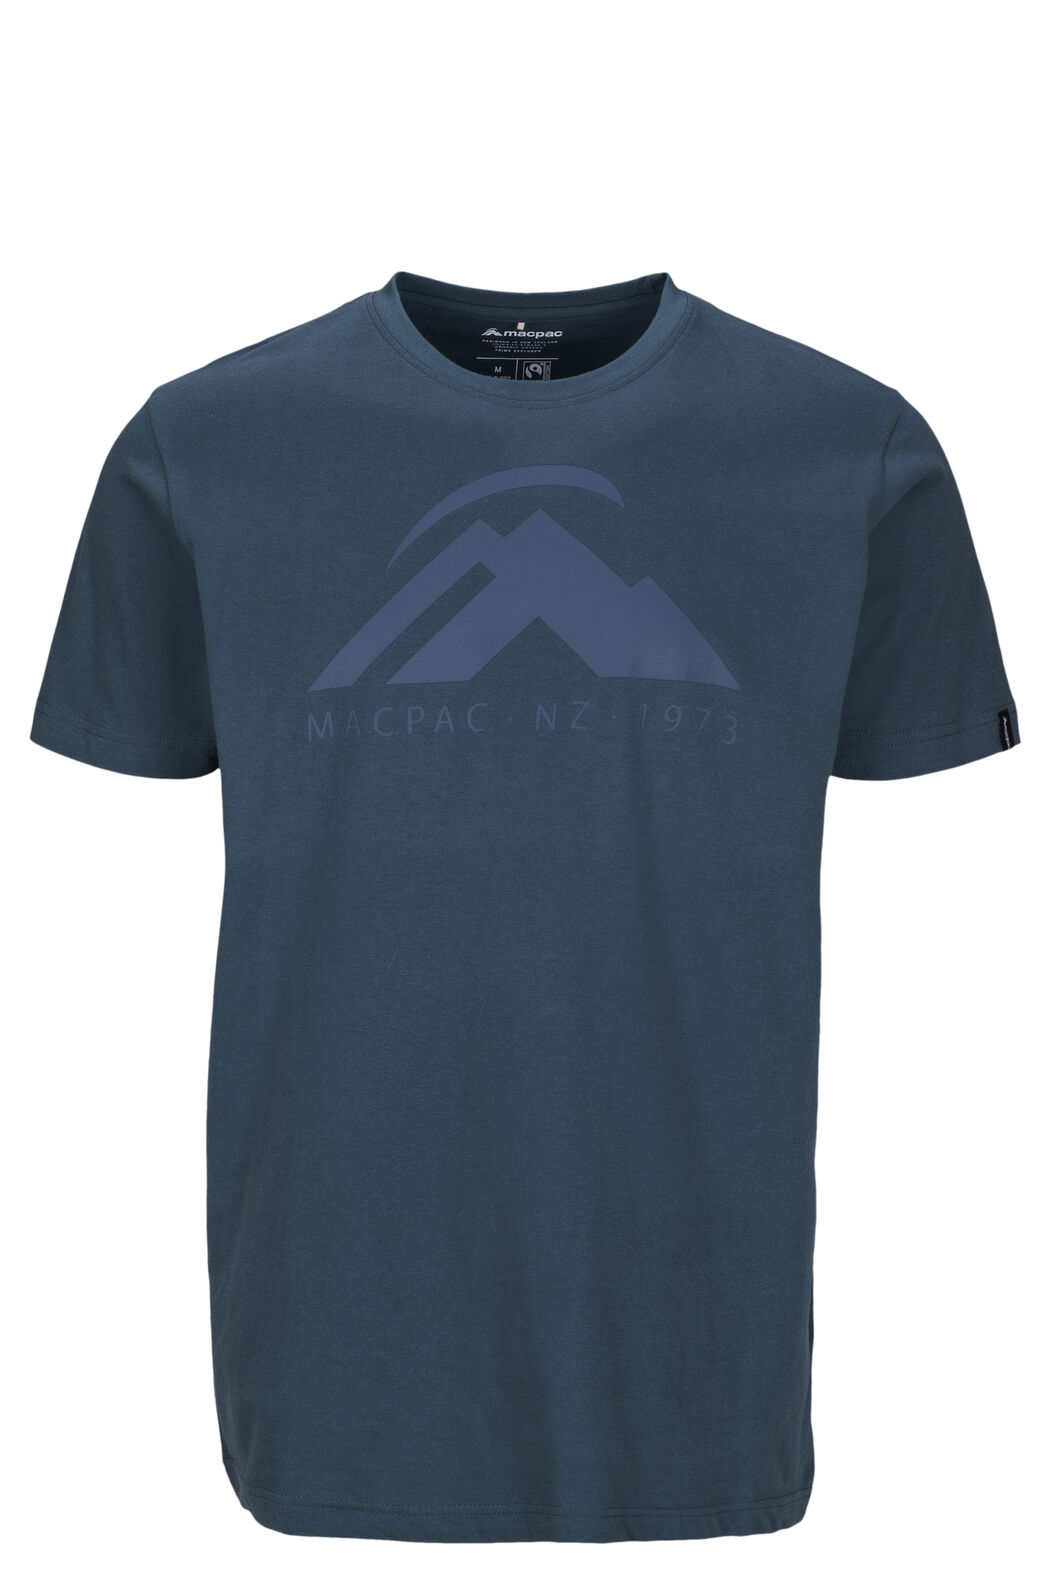 Macpac Mountain Fairtrade Organic Cotton Tee — Men's, Orion Blue, hi-res